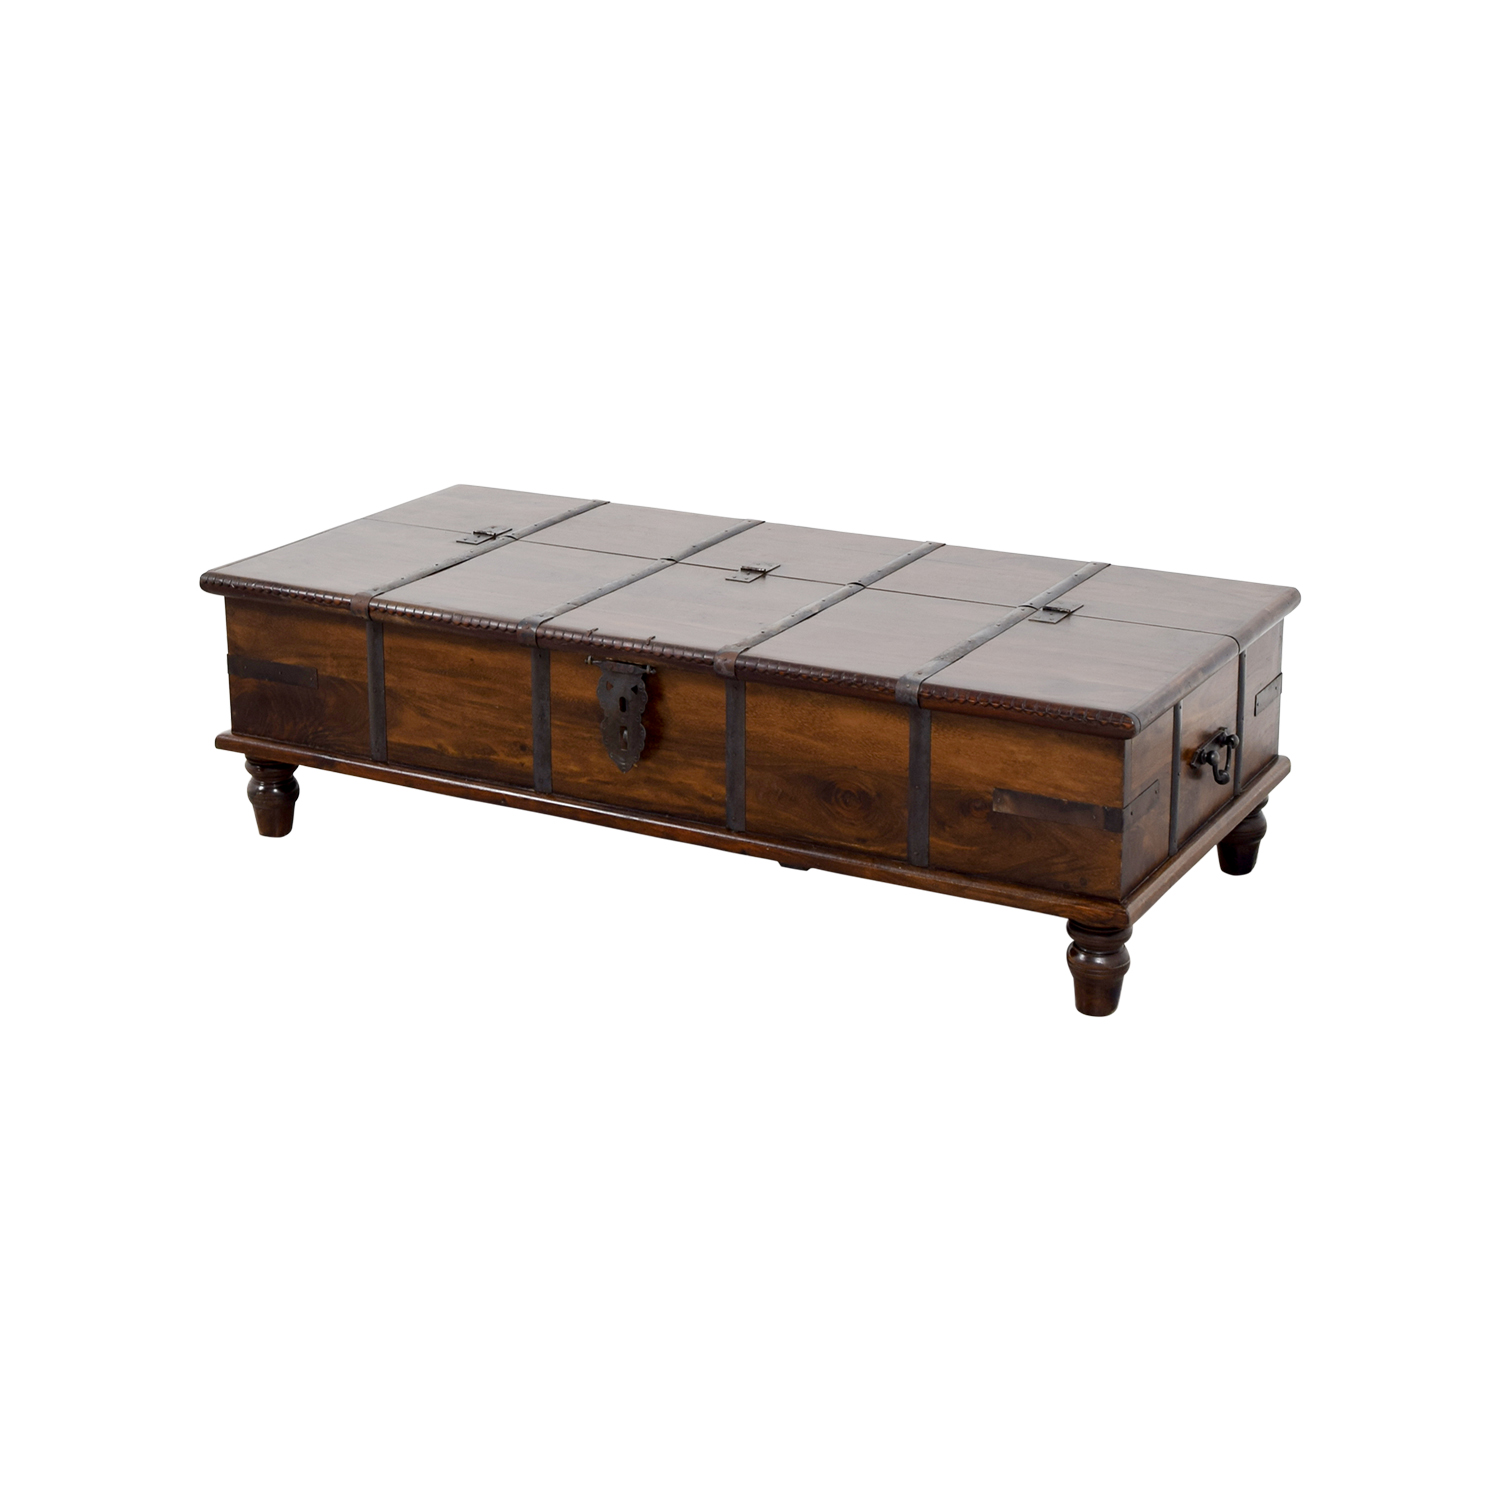 41 Off Z Gallerie Z Gallerie Moroccan Coffee Table Tables